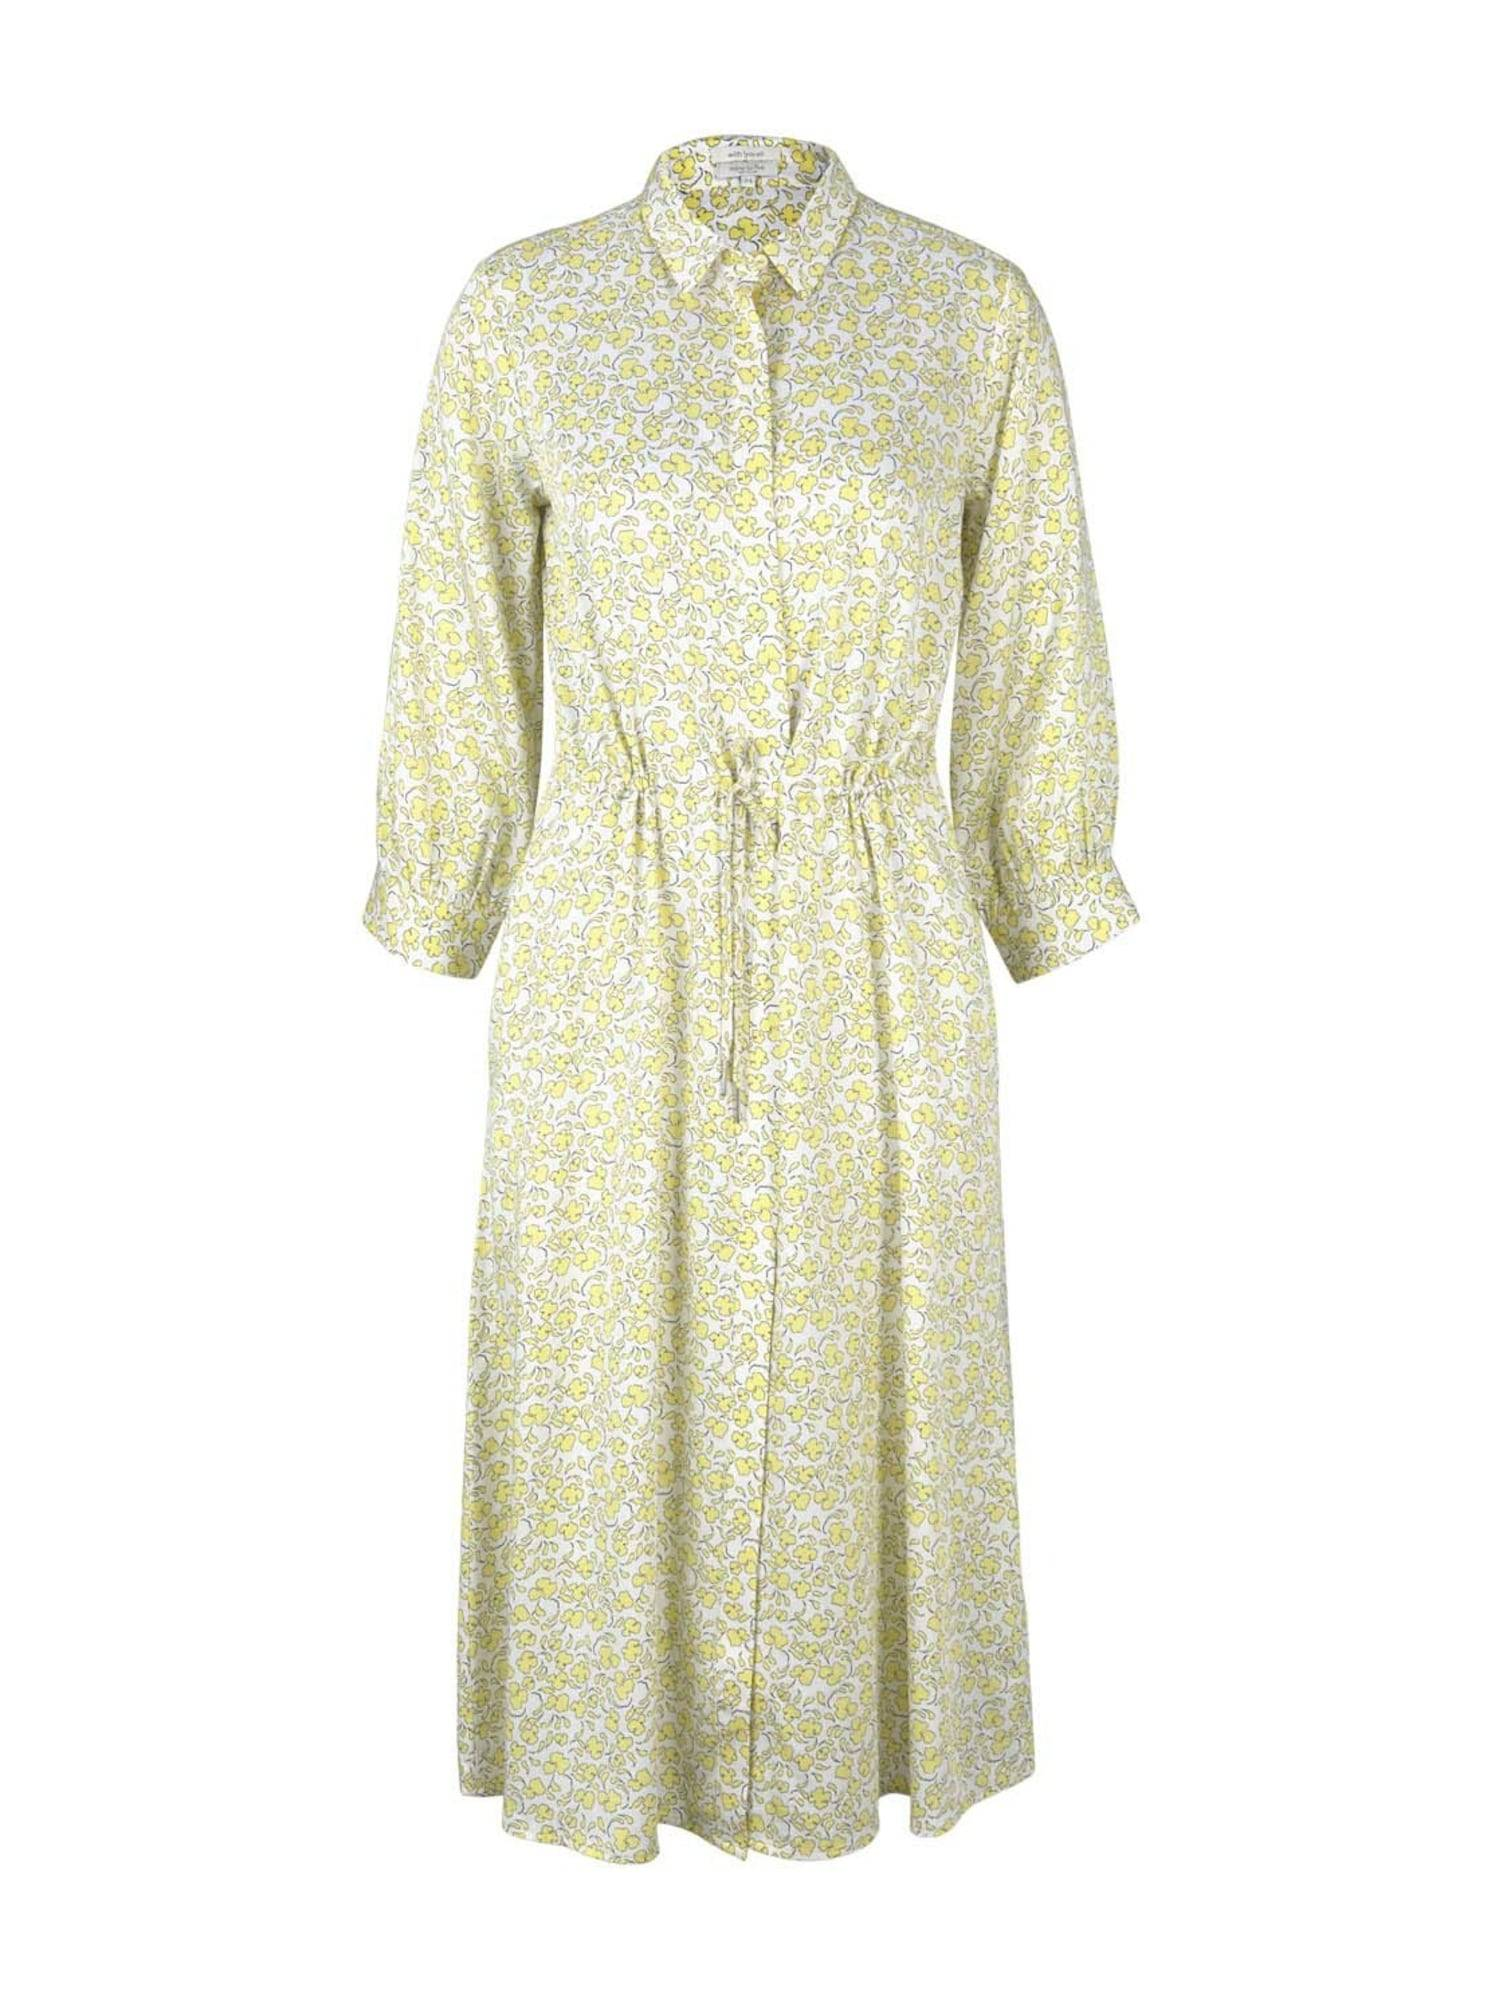 MINE TO FIVE Robe-chemise  - Jaune - Taille: 42 - female